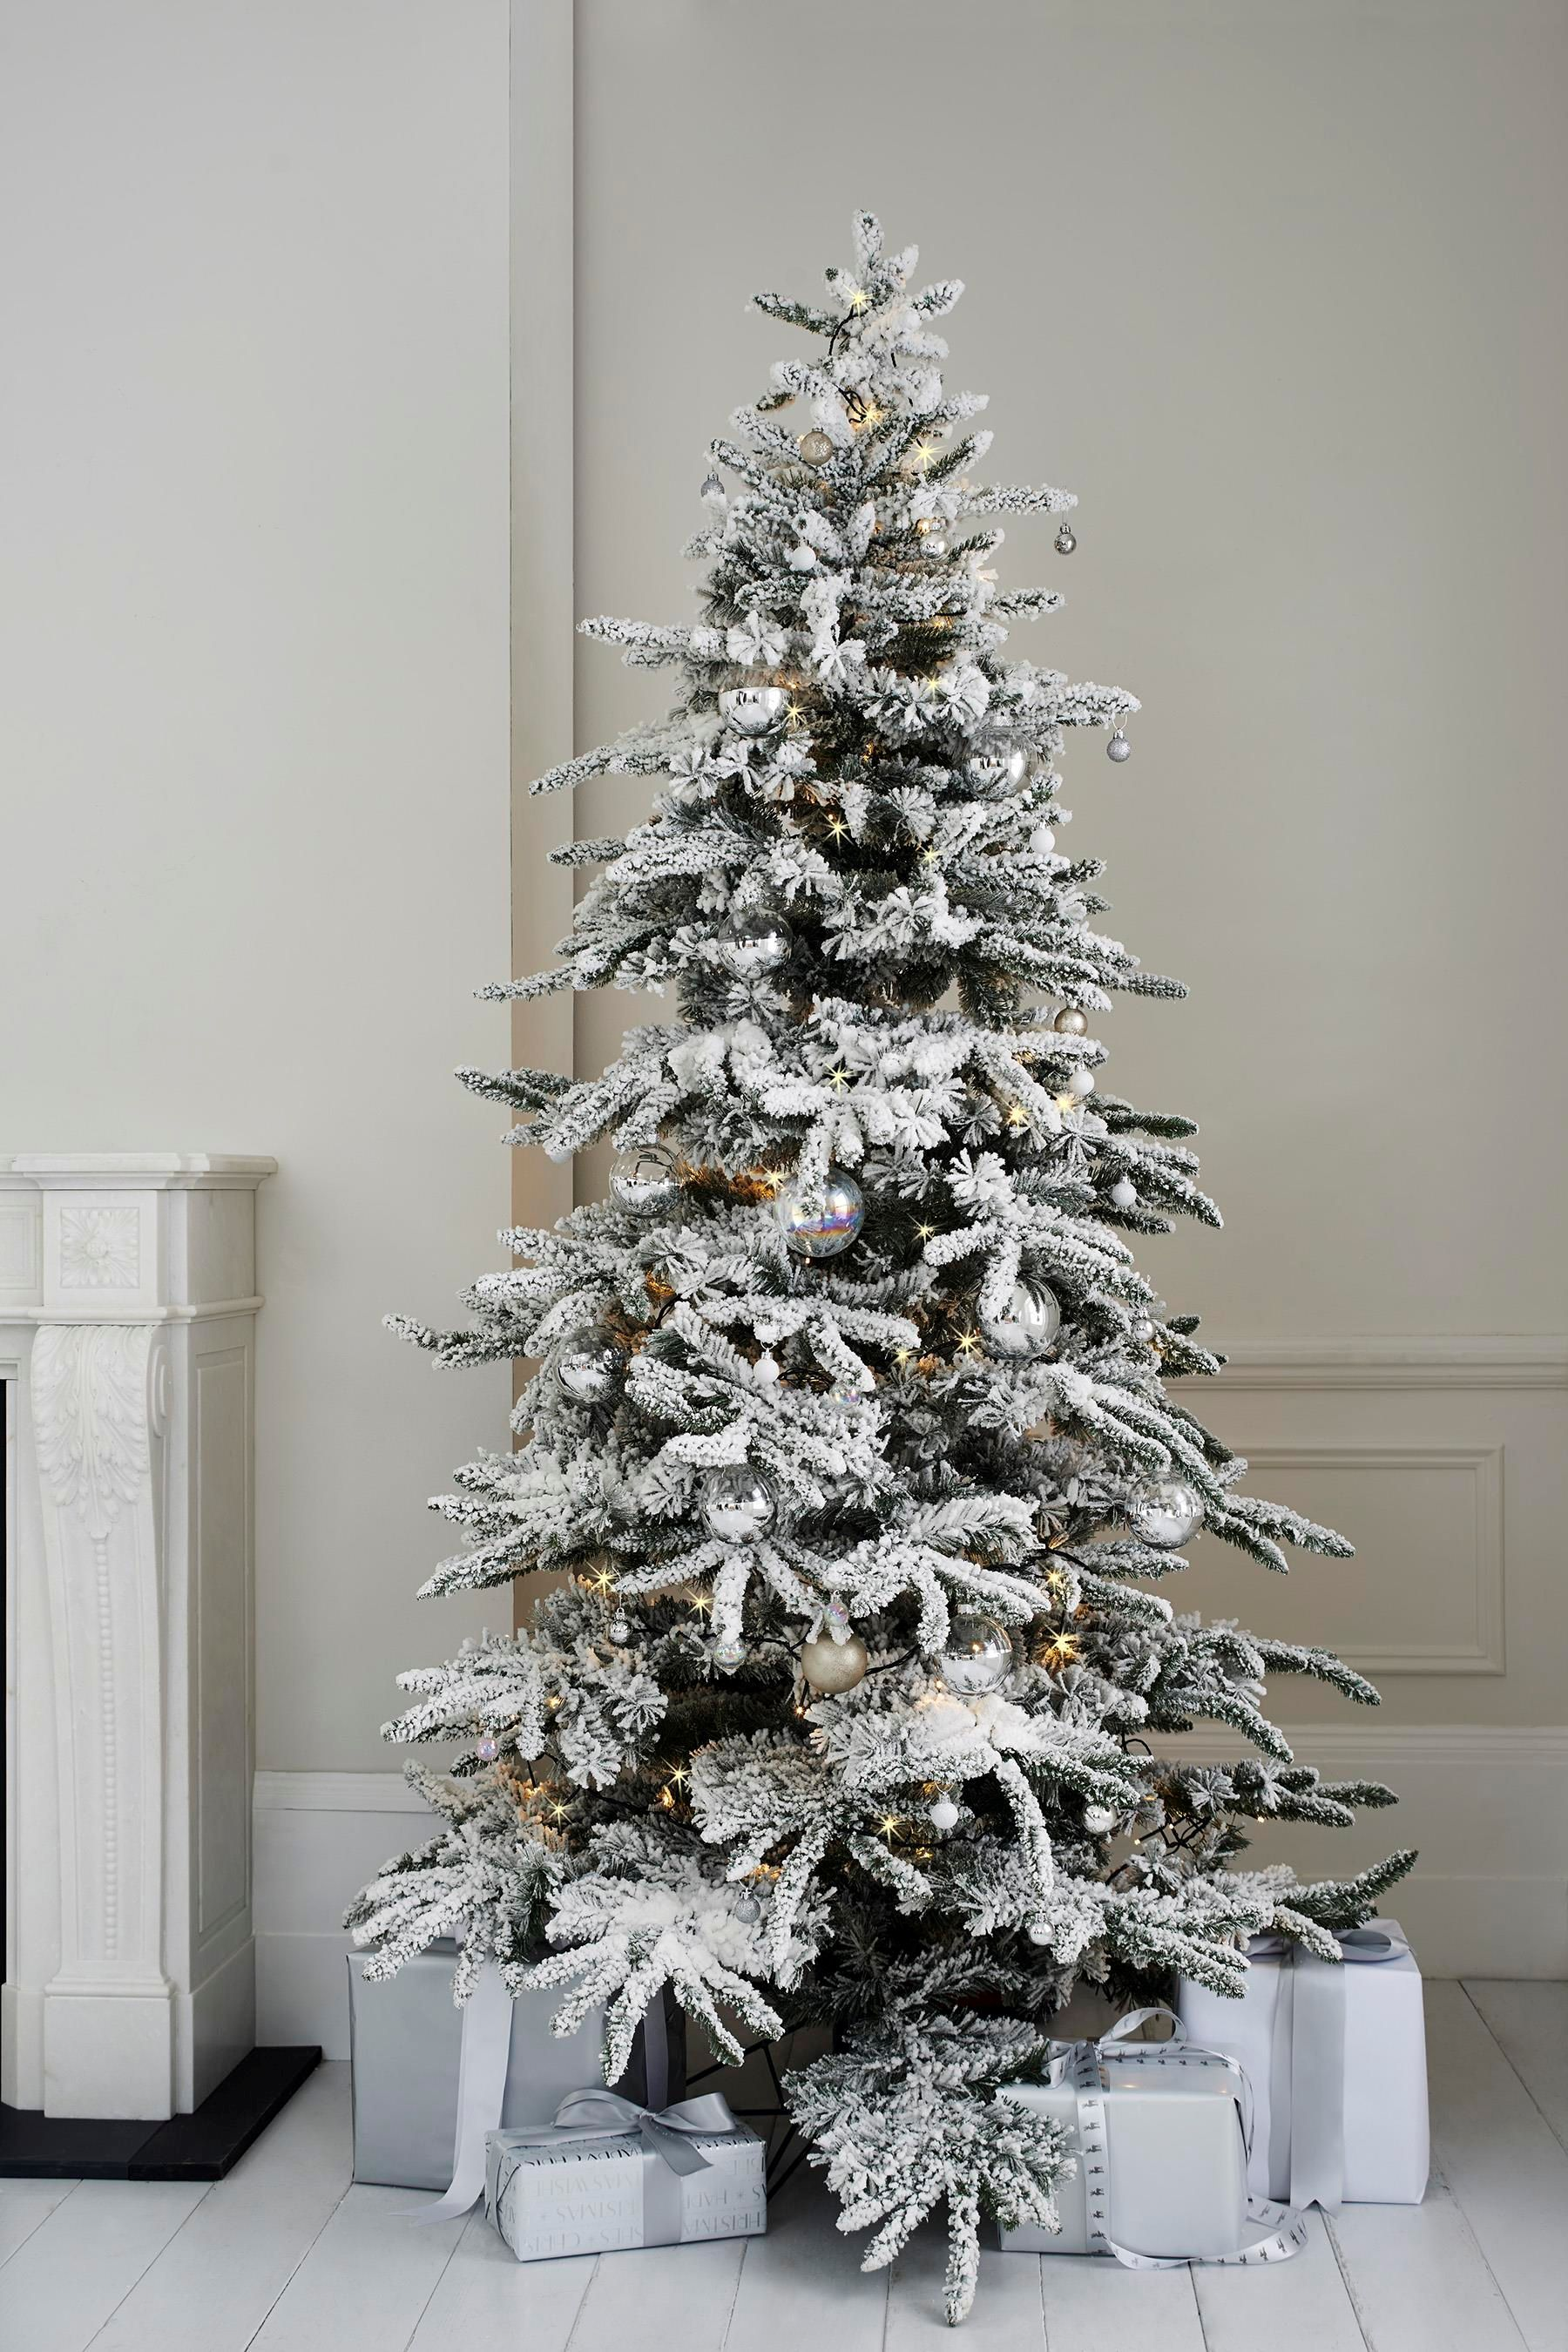 White Christmas 7ft Alaskan Fir Tree With Faux Snow From Next Uk